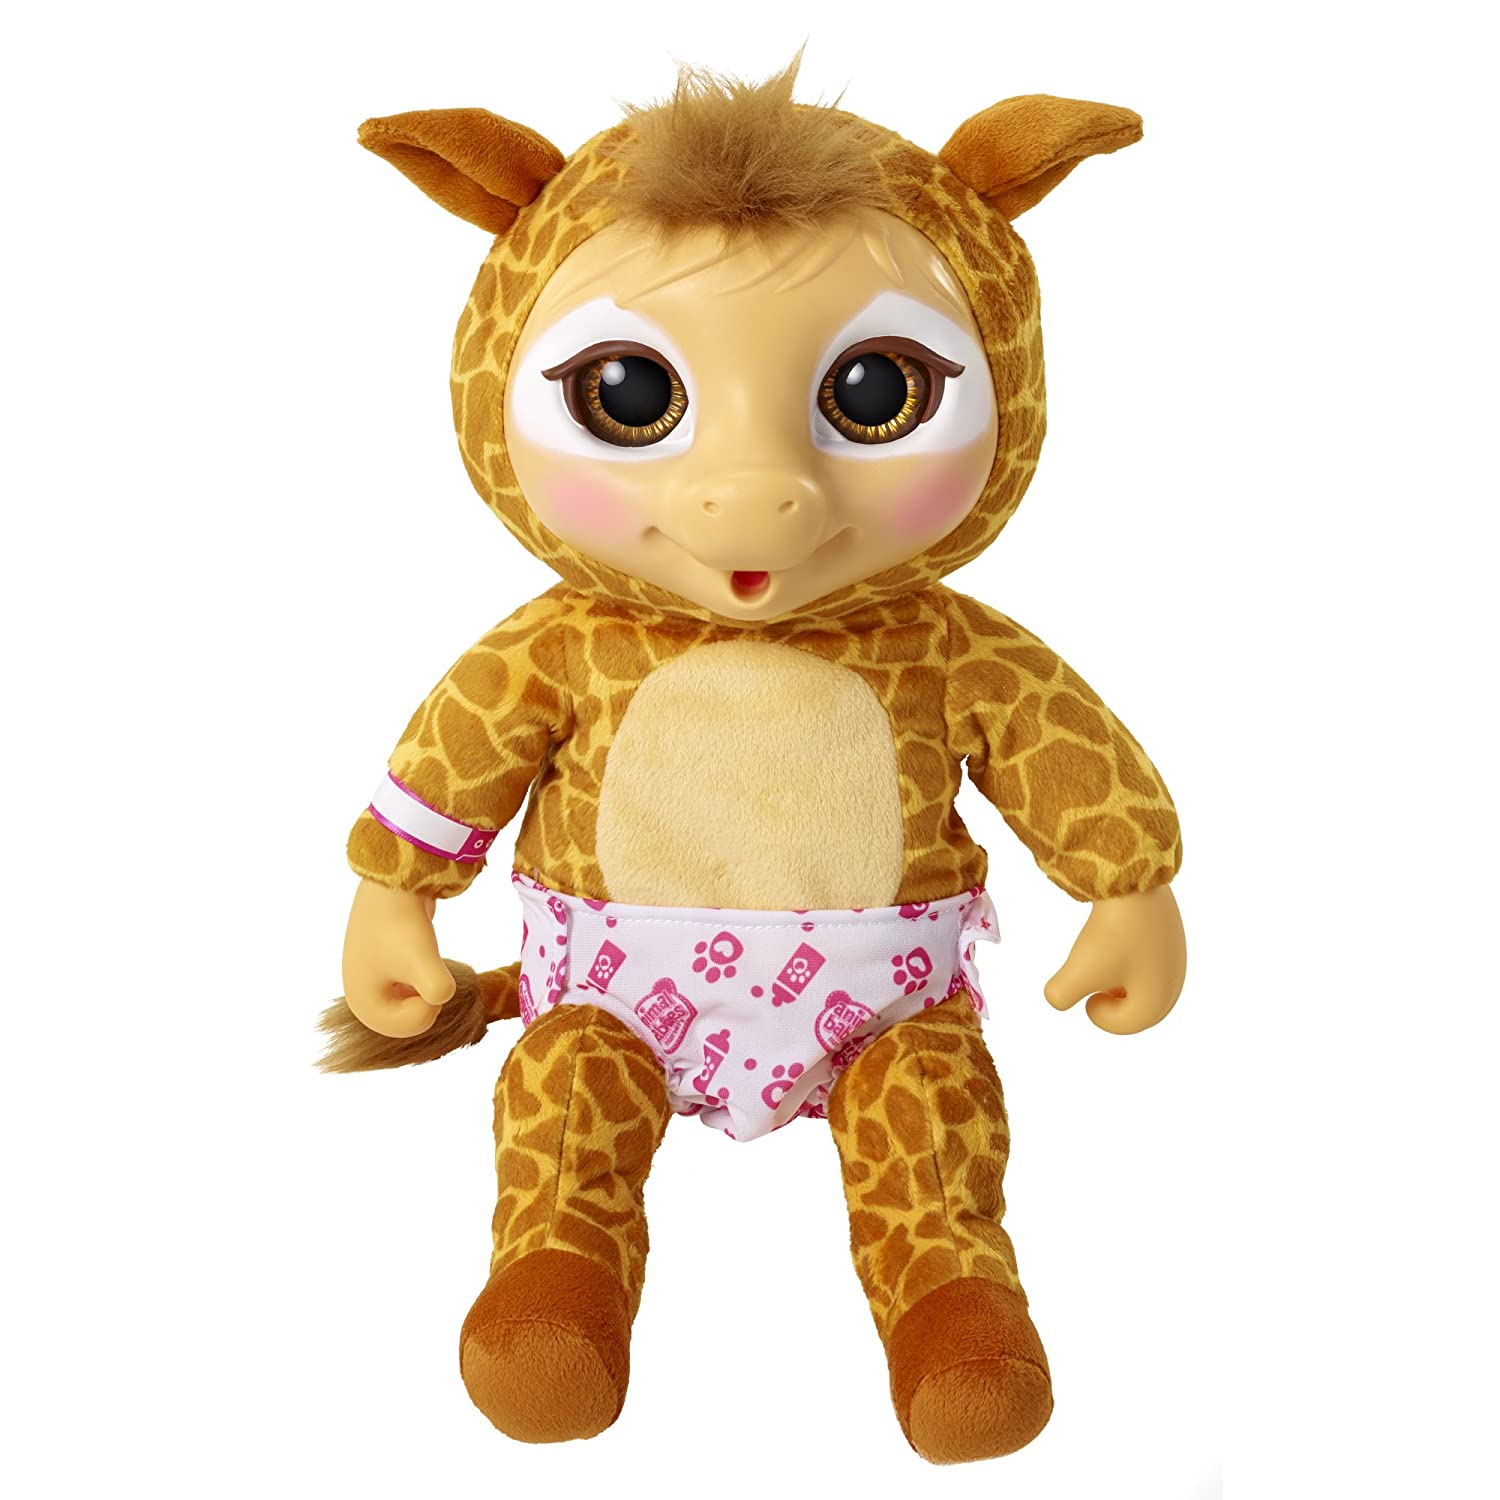 Animal Babies Deluxe Giraffe Amazon Toys & Games